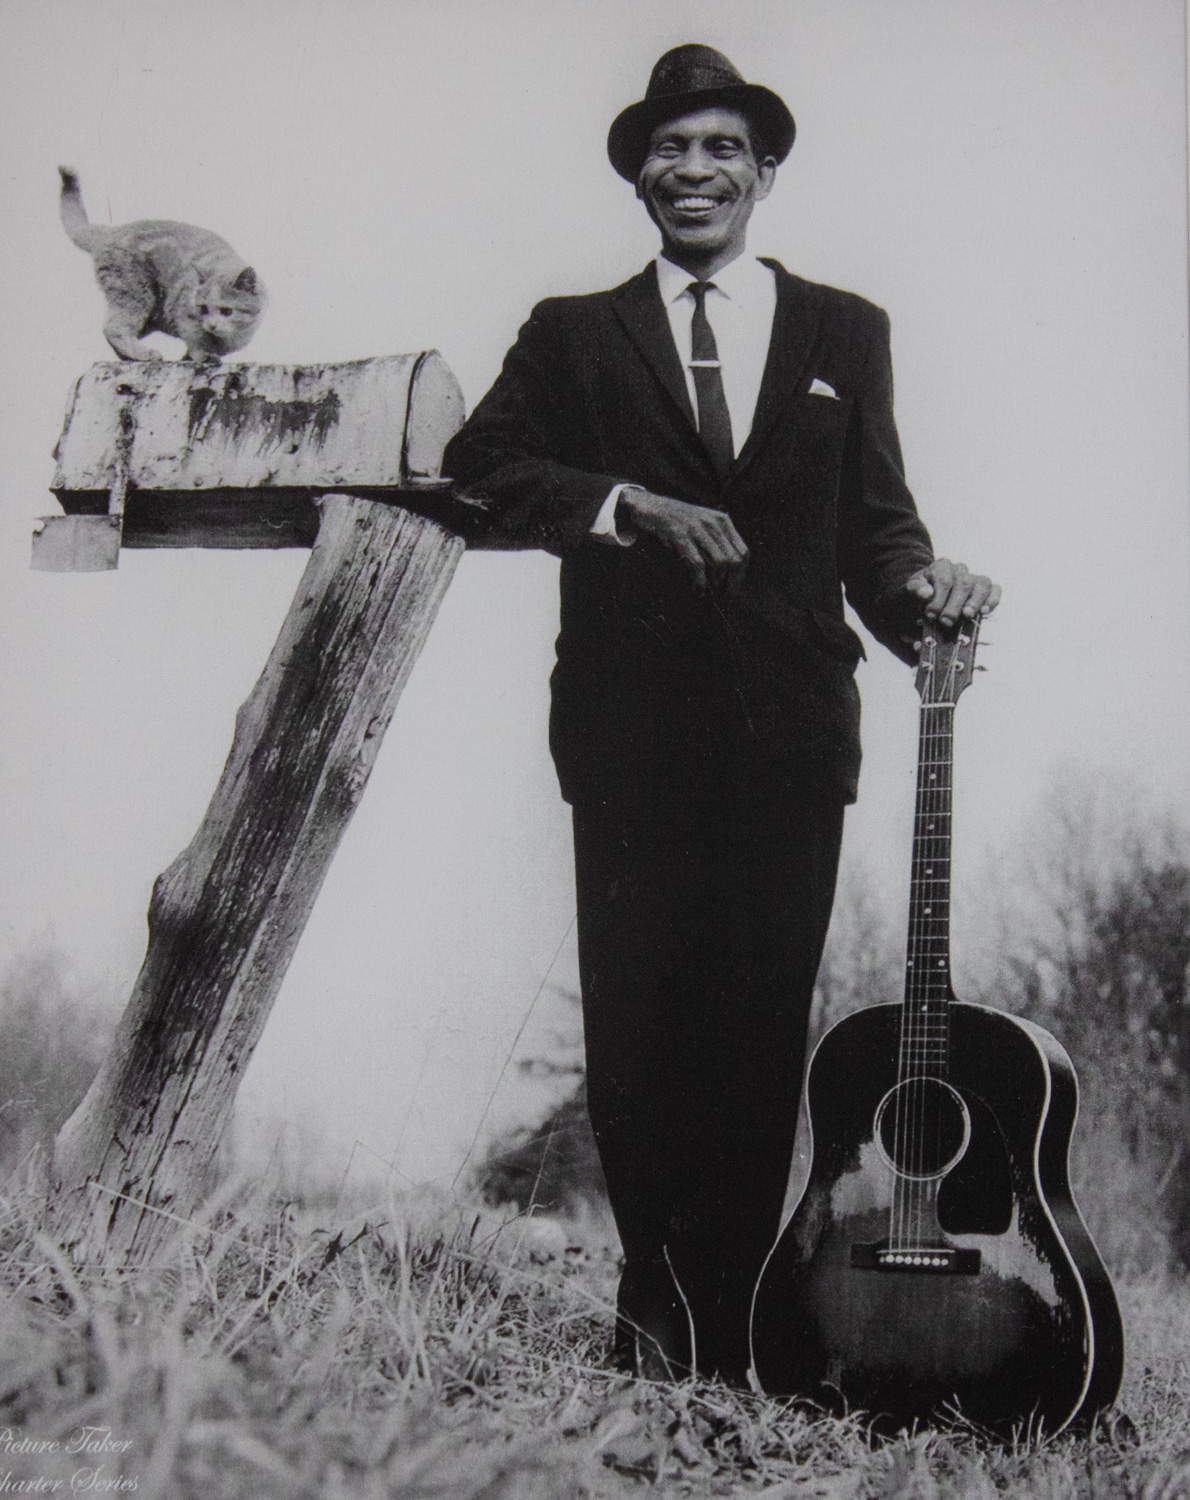 Singing Same - Madison County by Ken Elkins, Silver Gelatin Print